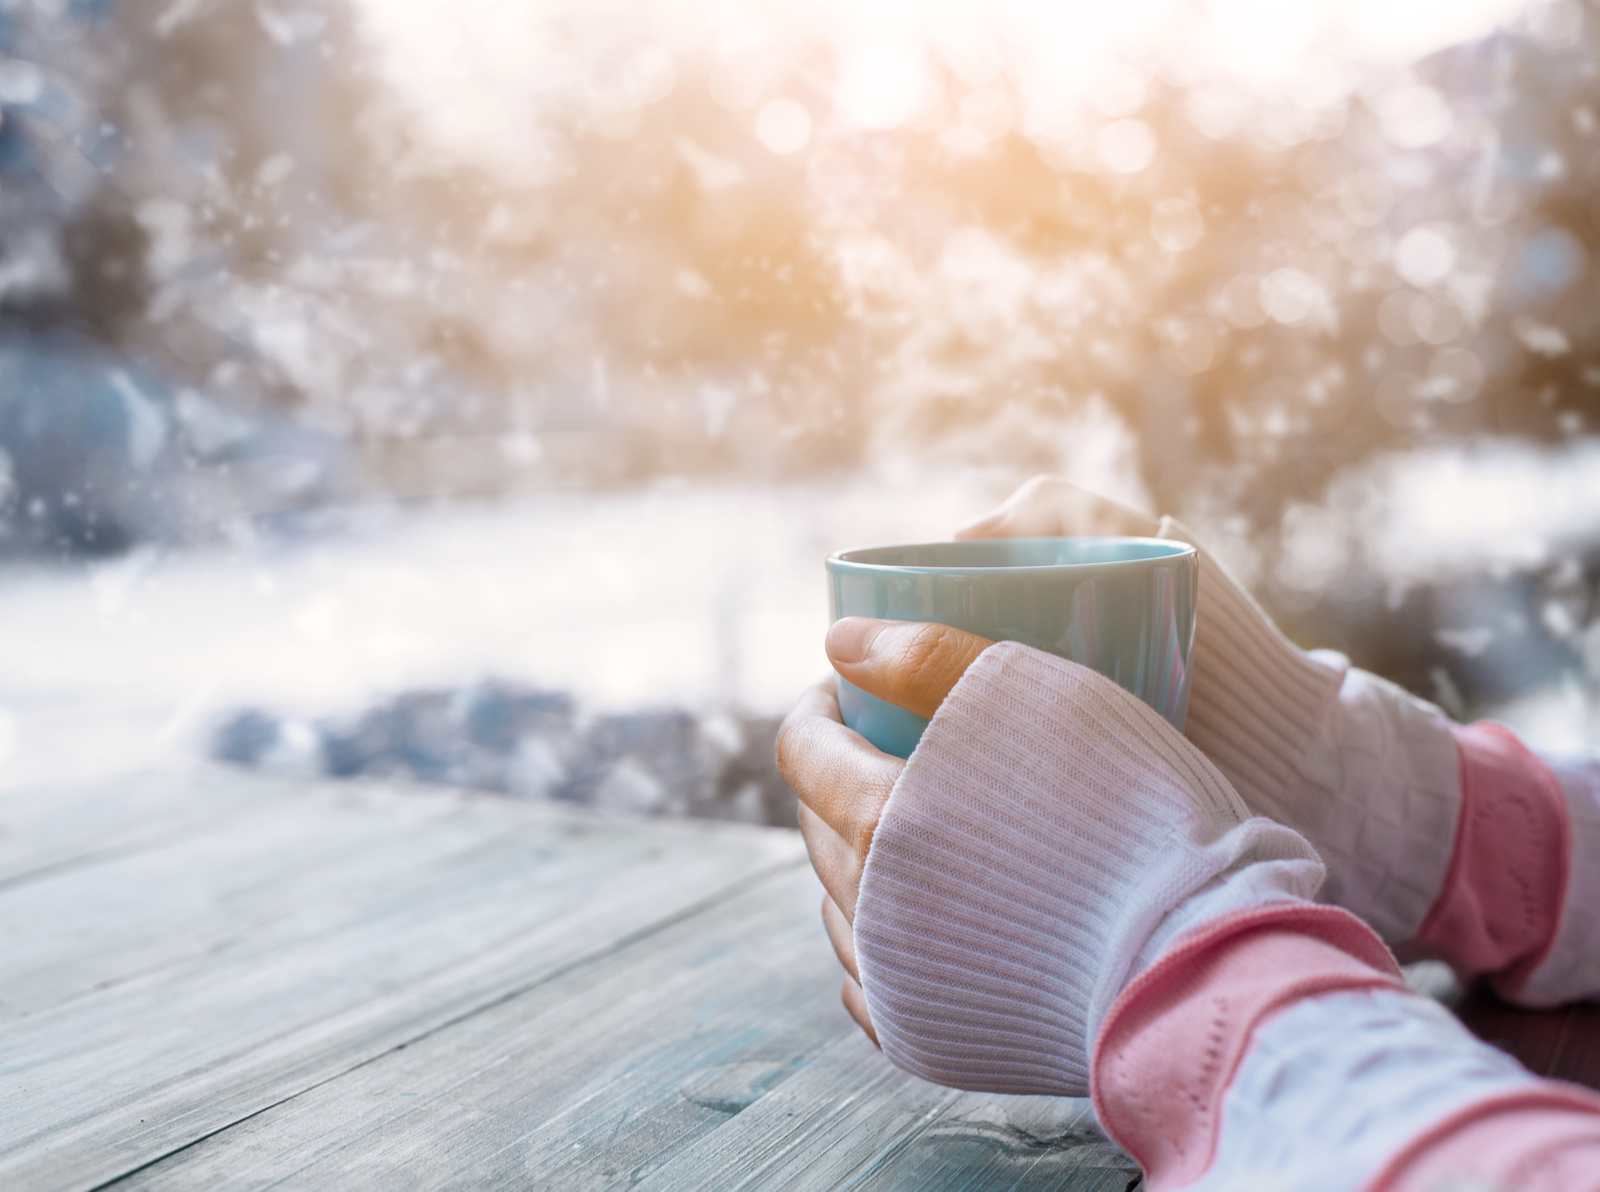 5 CBD Teas That are Perfect for the Frigid WinterCBD Today – For